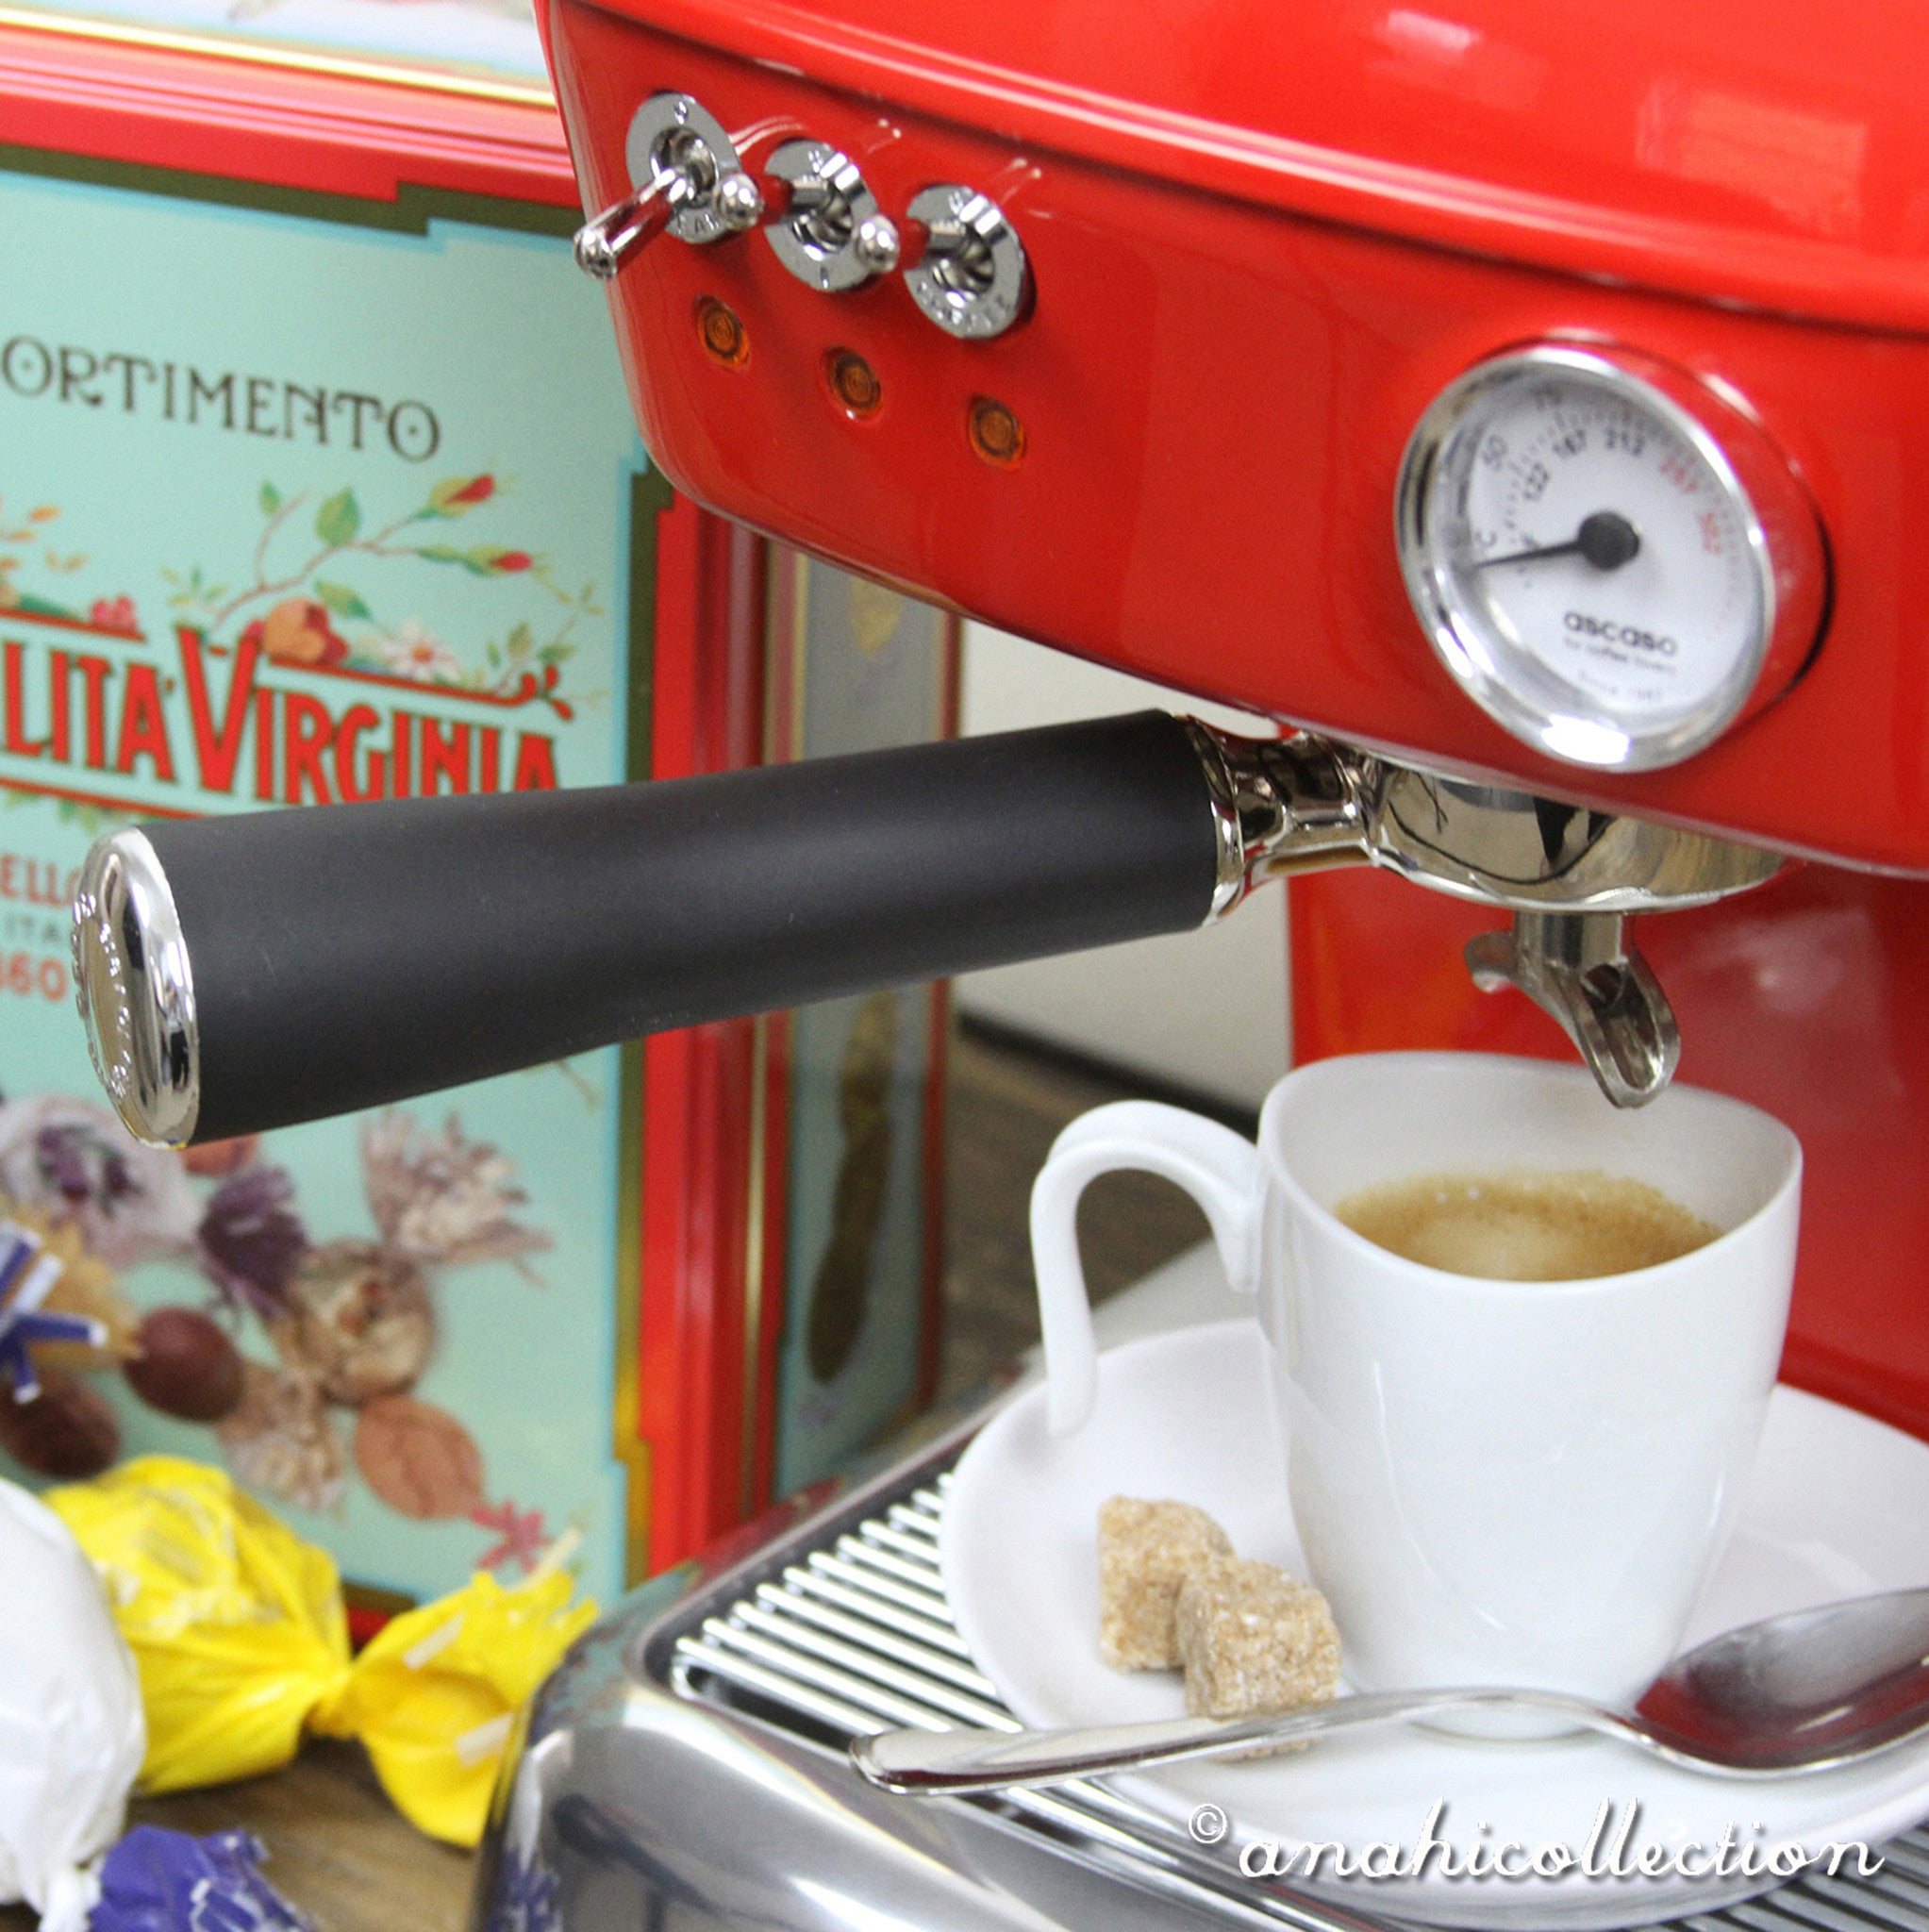 Ascaso 'Dream' Artisan Espresso Machine